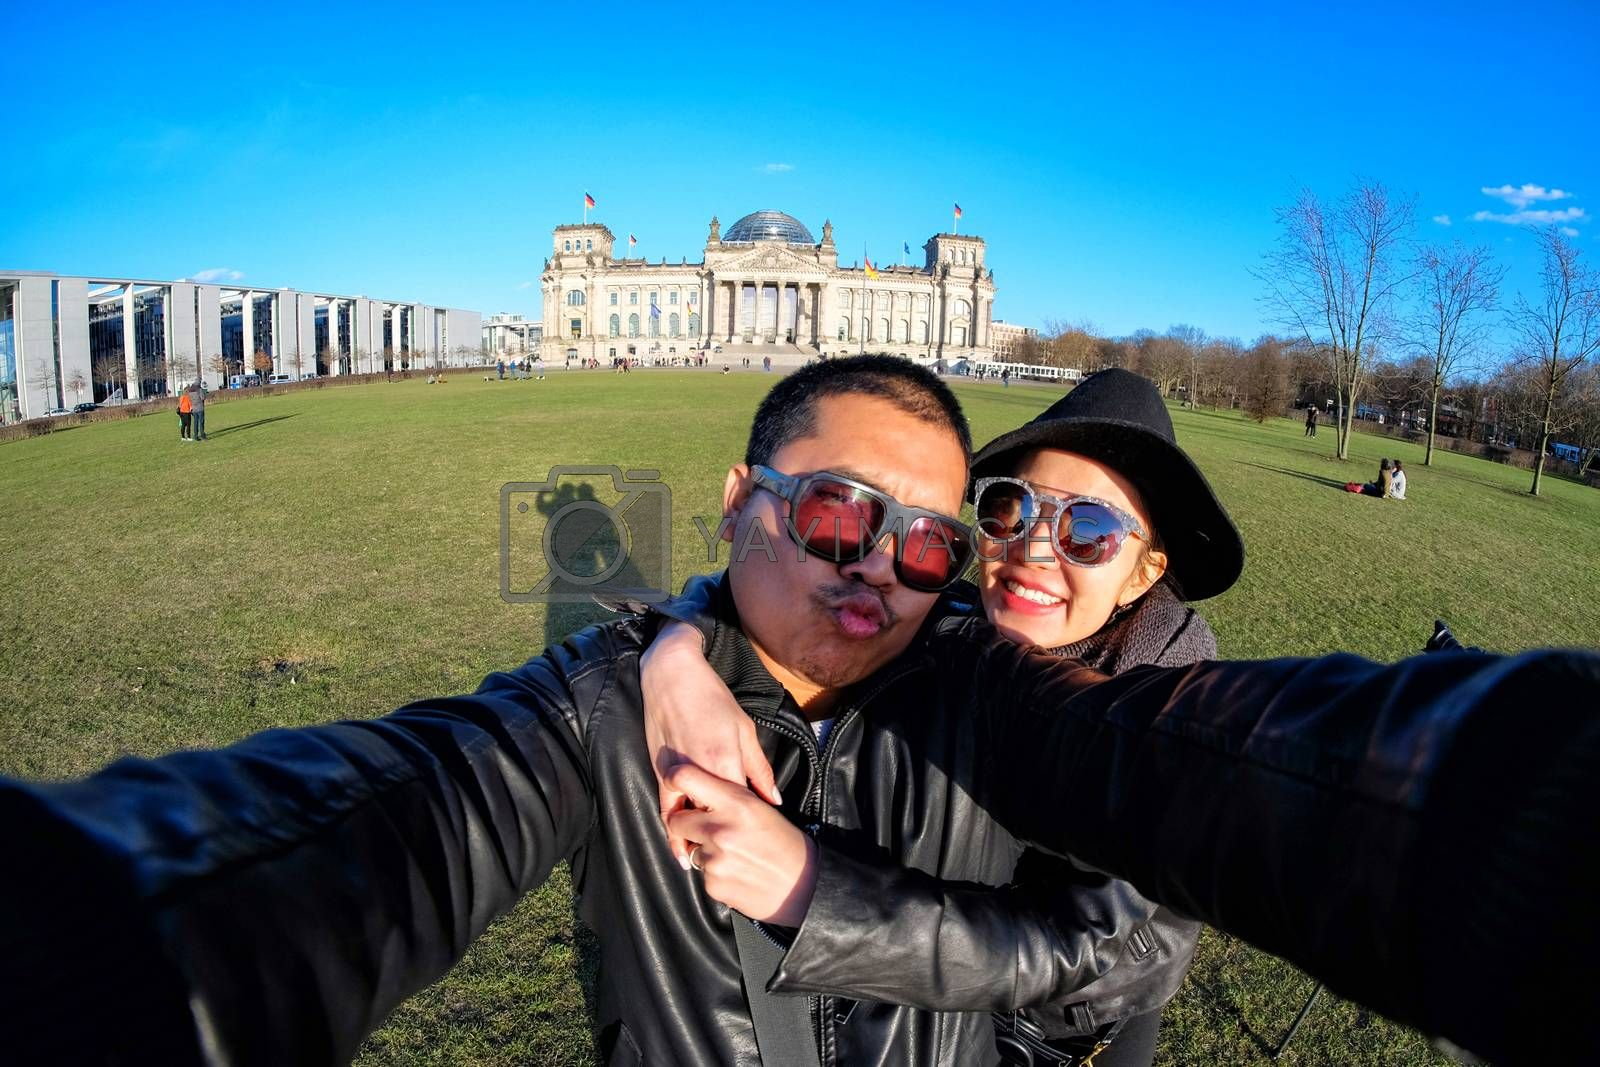 Young Couple Tourists selfie with mobile phone near the Reichstag building (german government) in Berlin, Germany